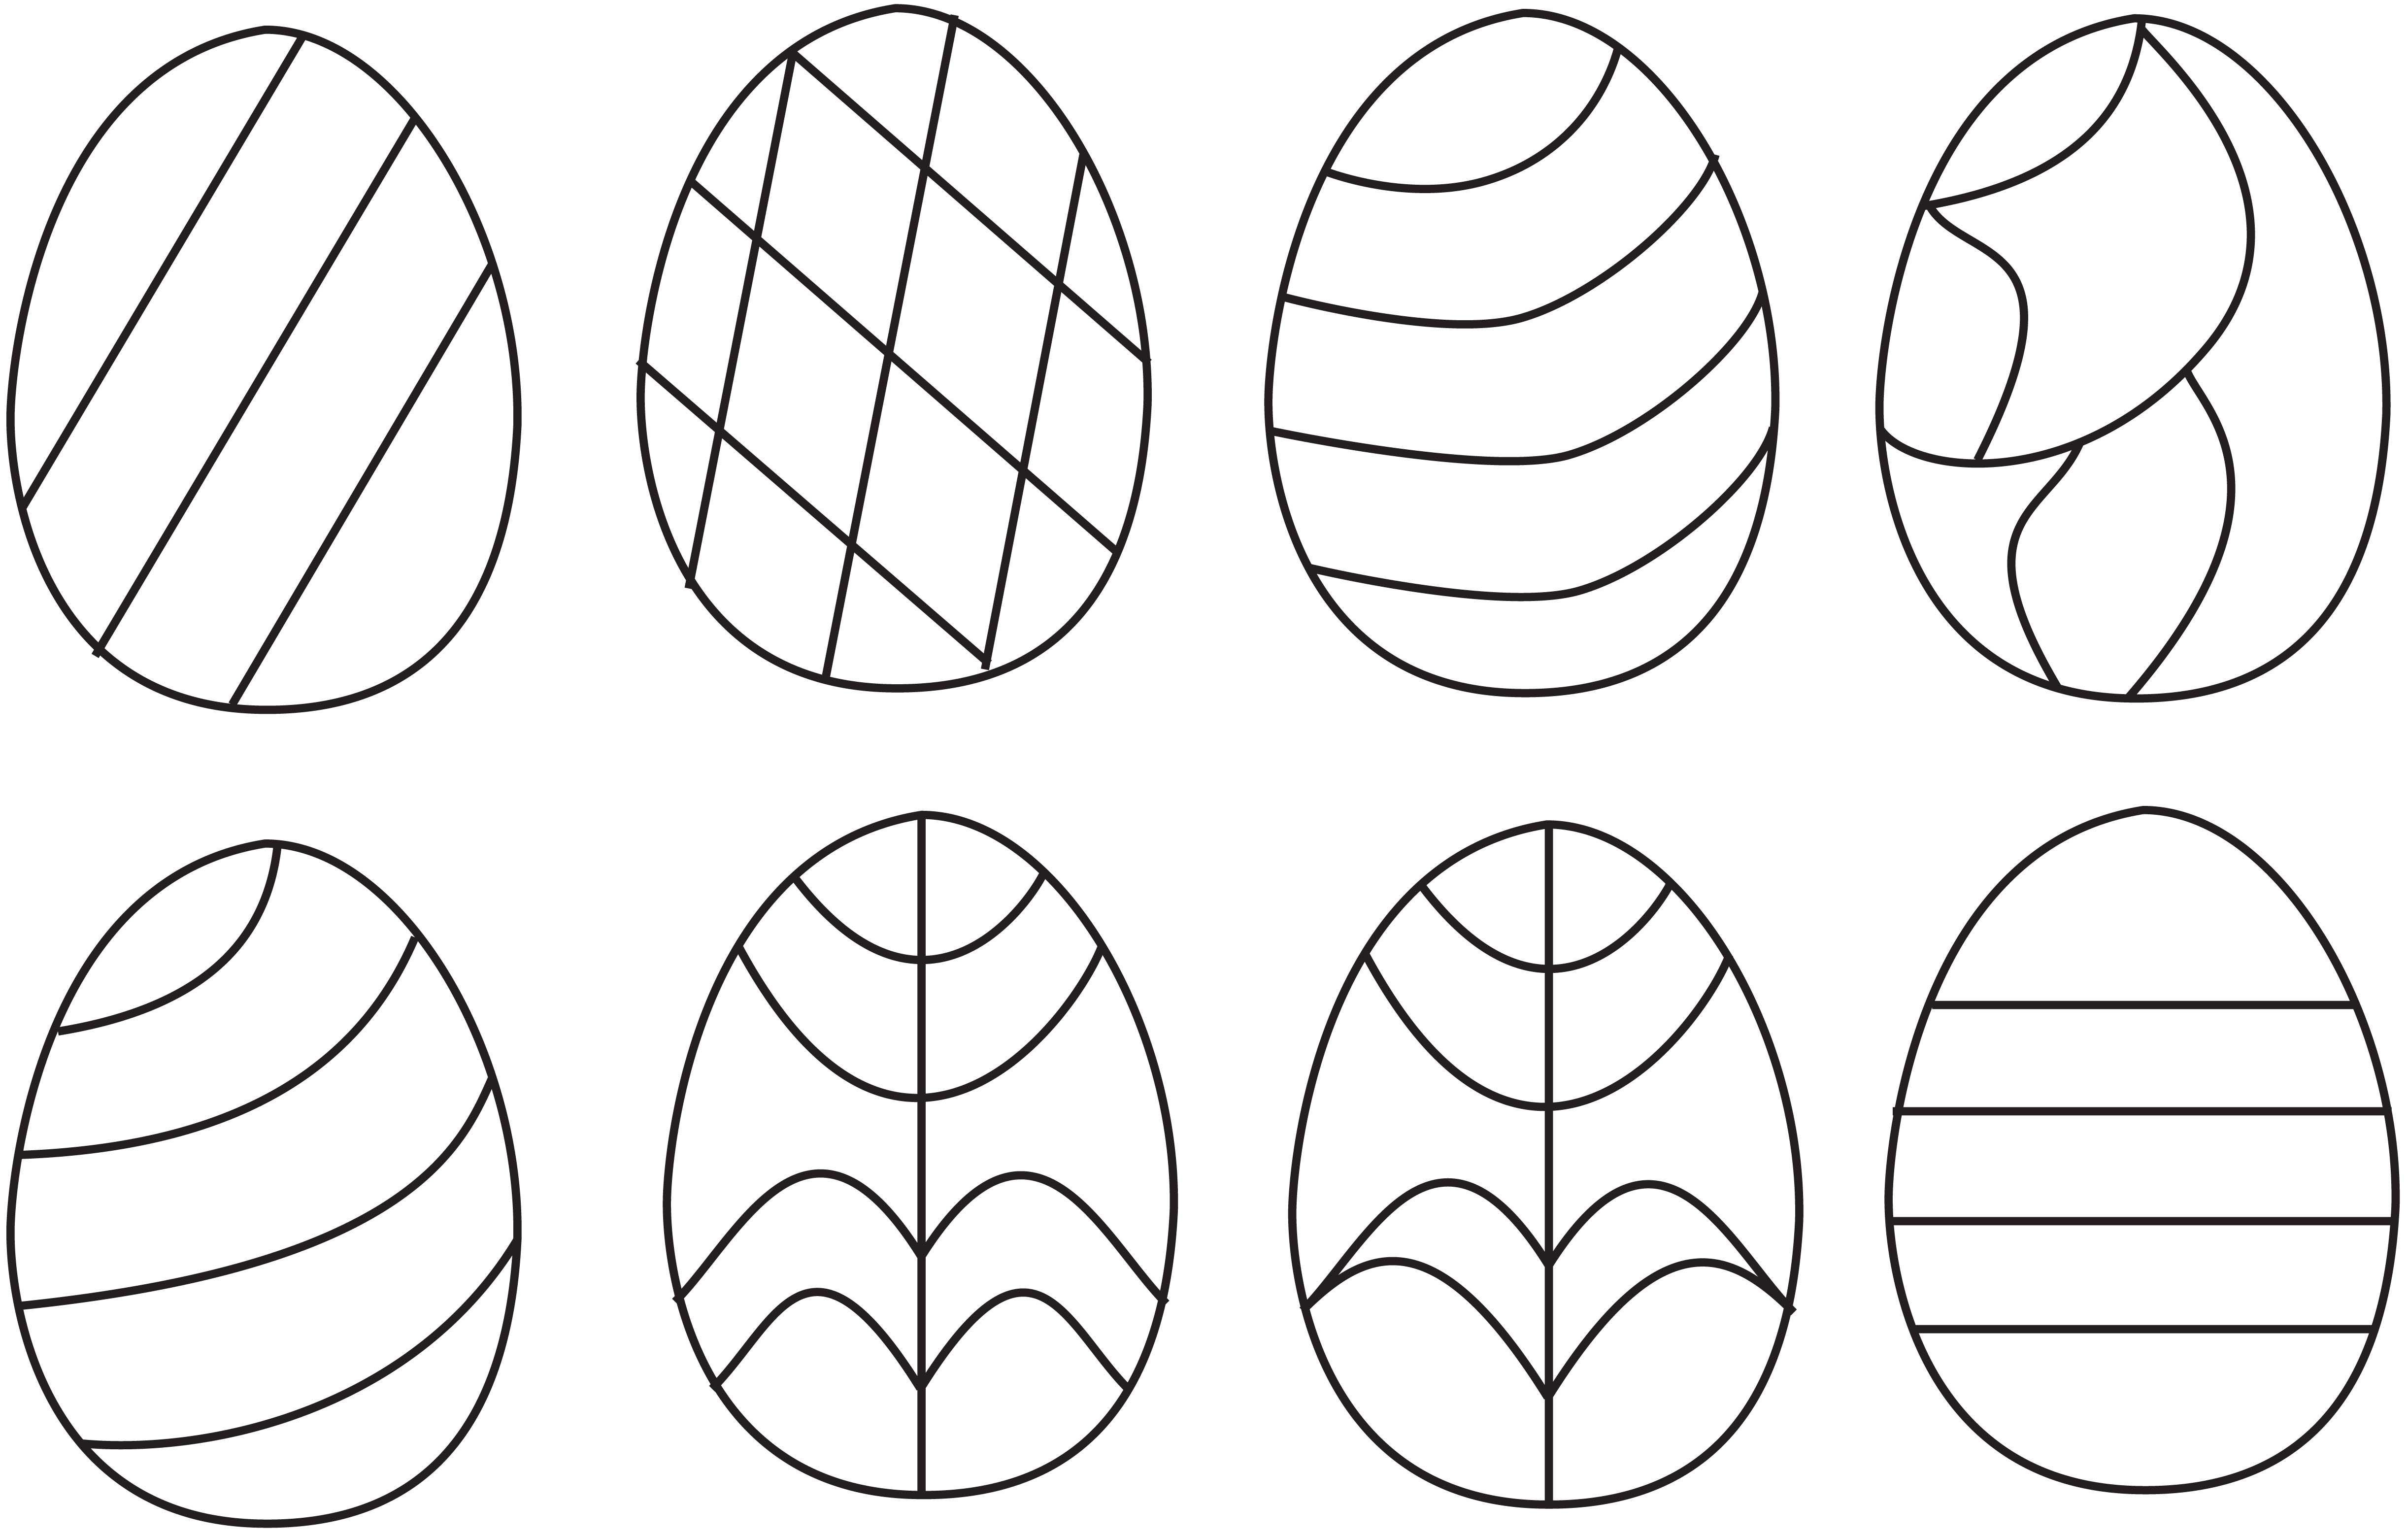 Original Stained Glass Template Easter Eggs By Curlycrocus On Stained Glass Patterns Free Stained Glass Suncatchers Stained Glass